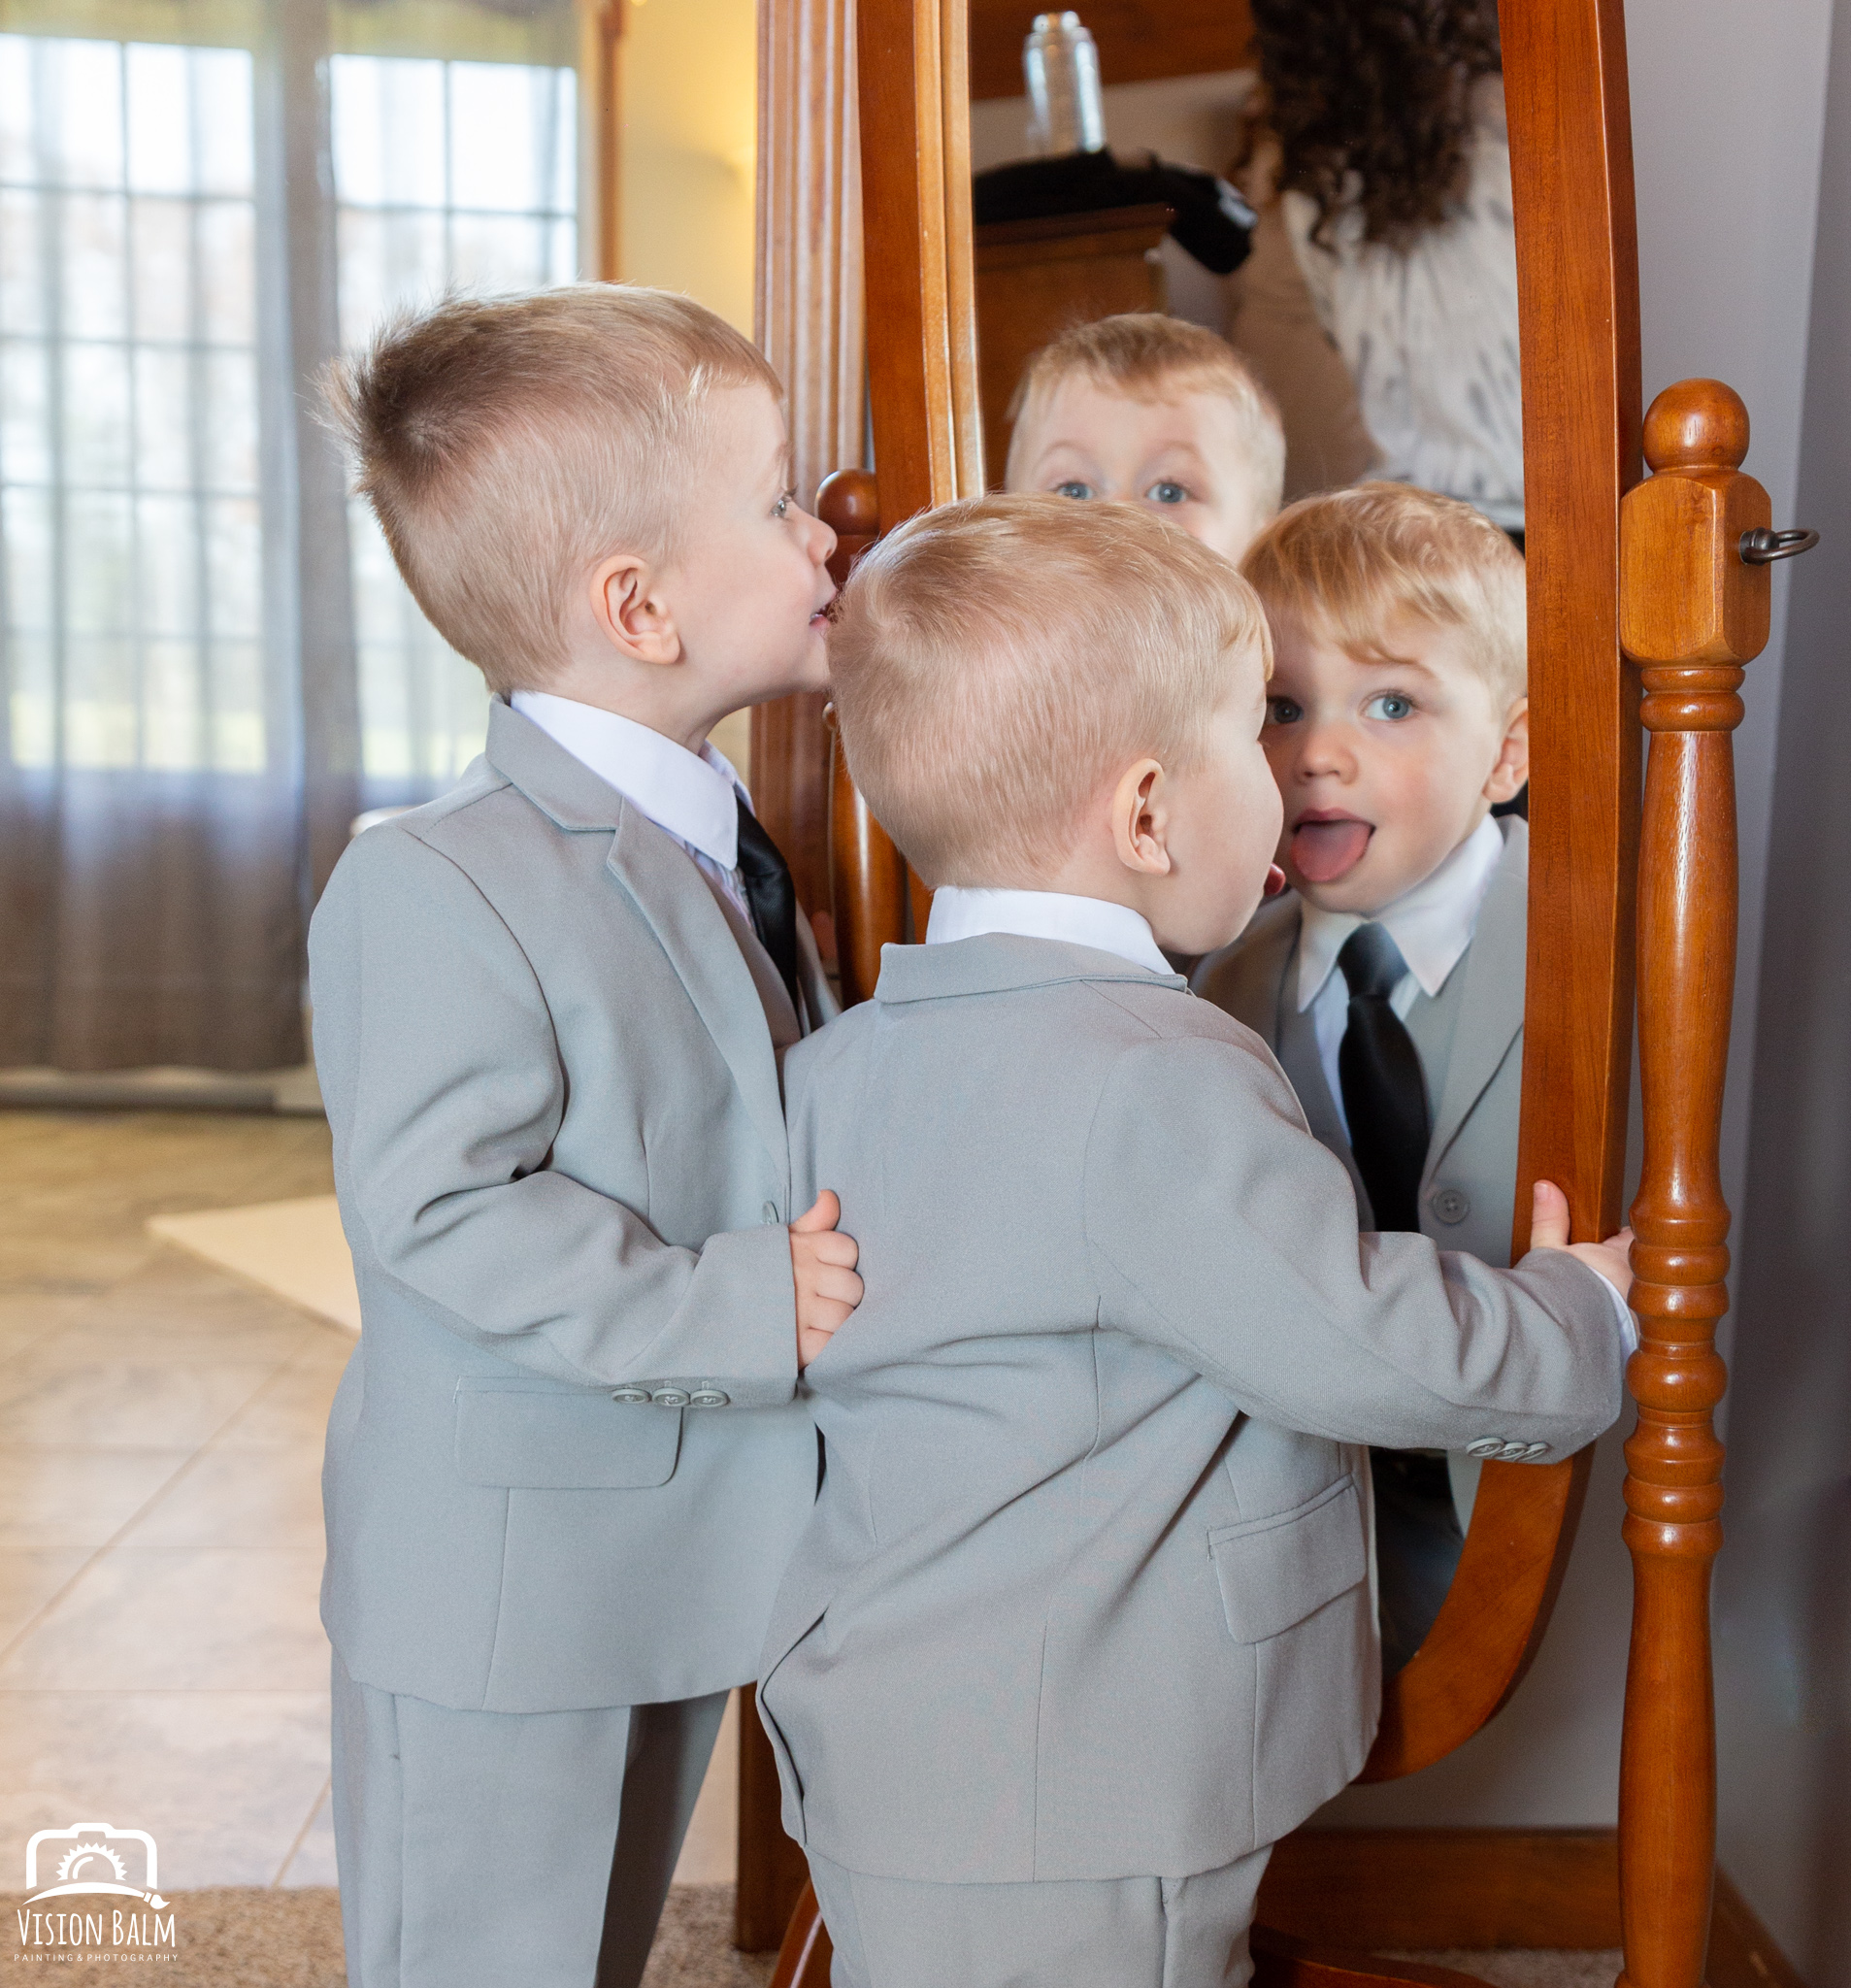 Portrait of young boys dressed in a gray suits for their mother's wedding looking at their reflections in the mirror in Zuka's Hilltop Barn by Vision Balm in Charleston, SC.